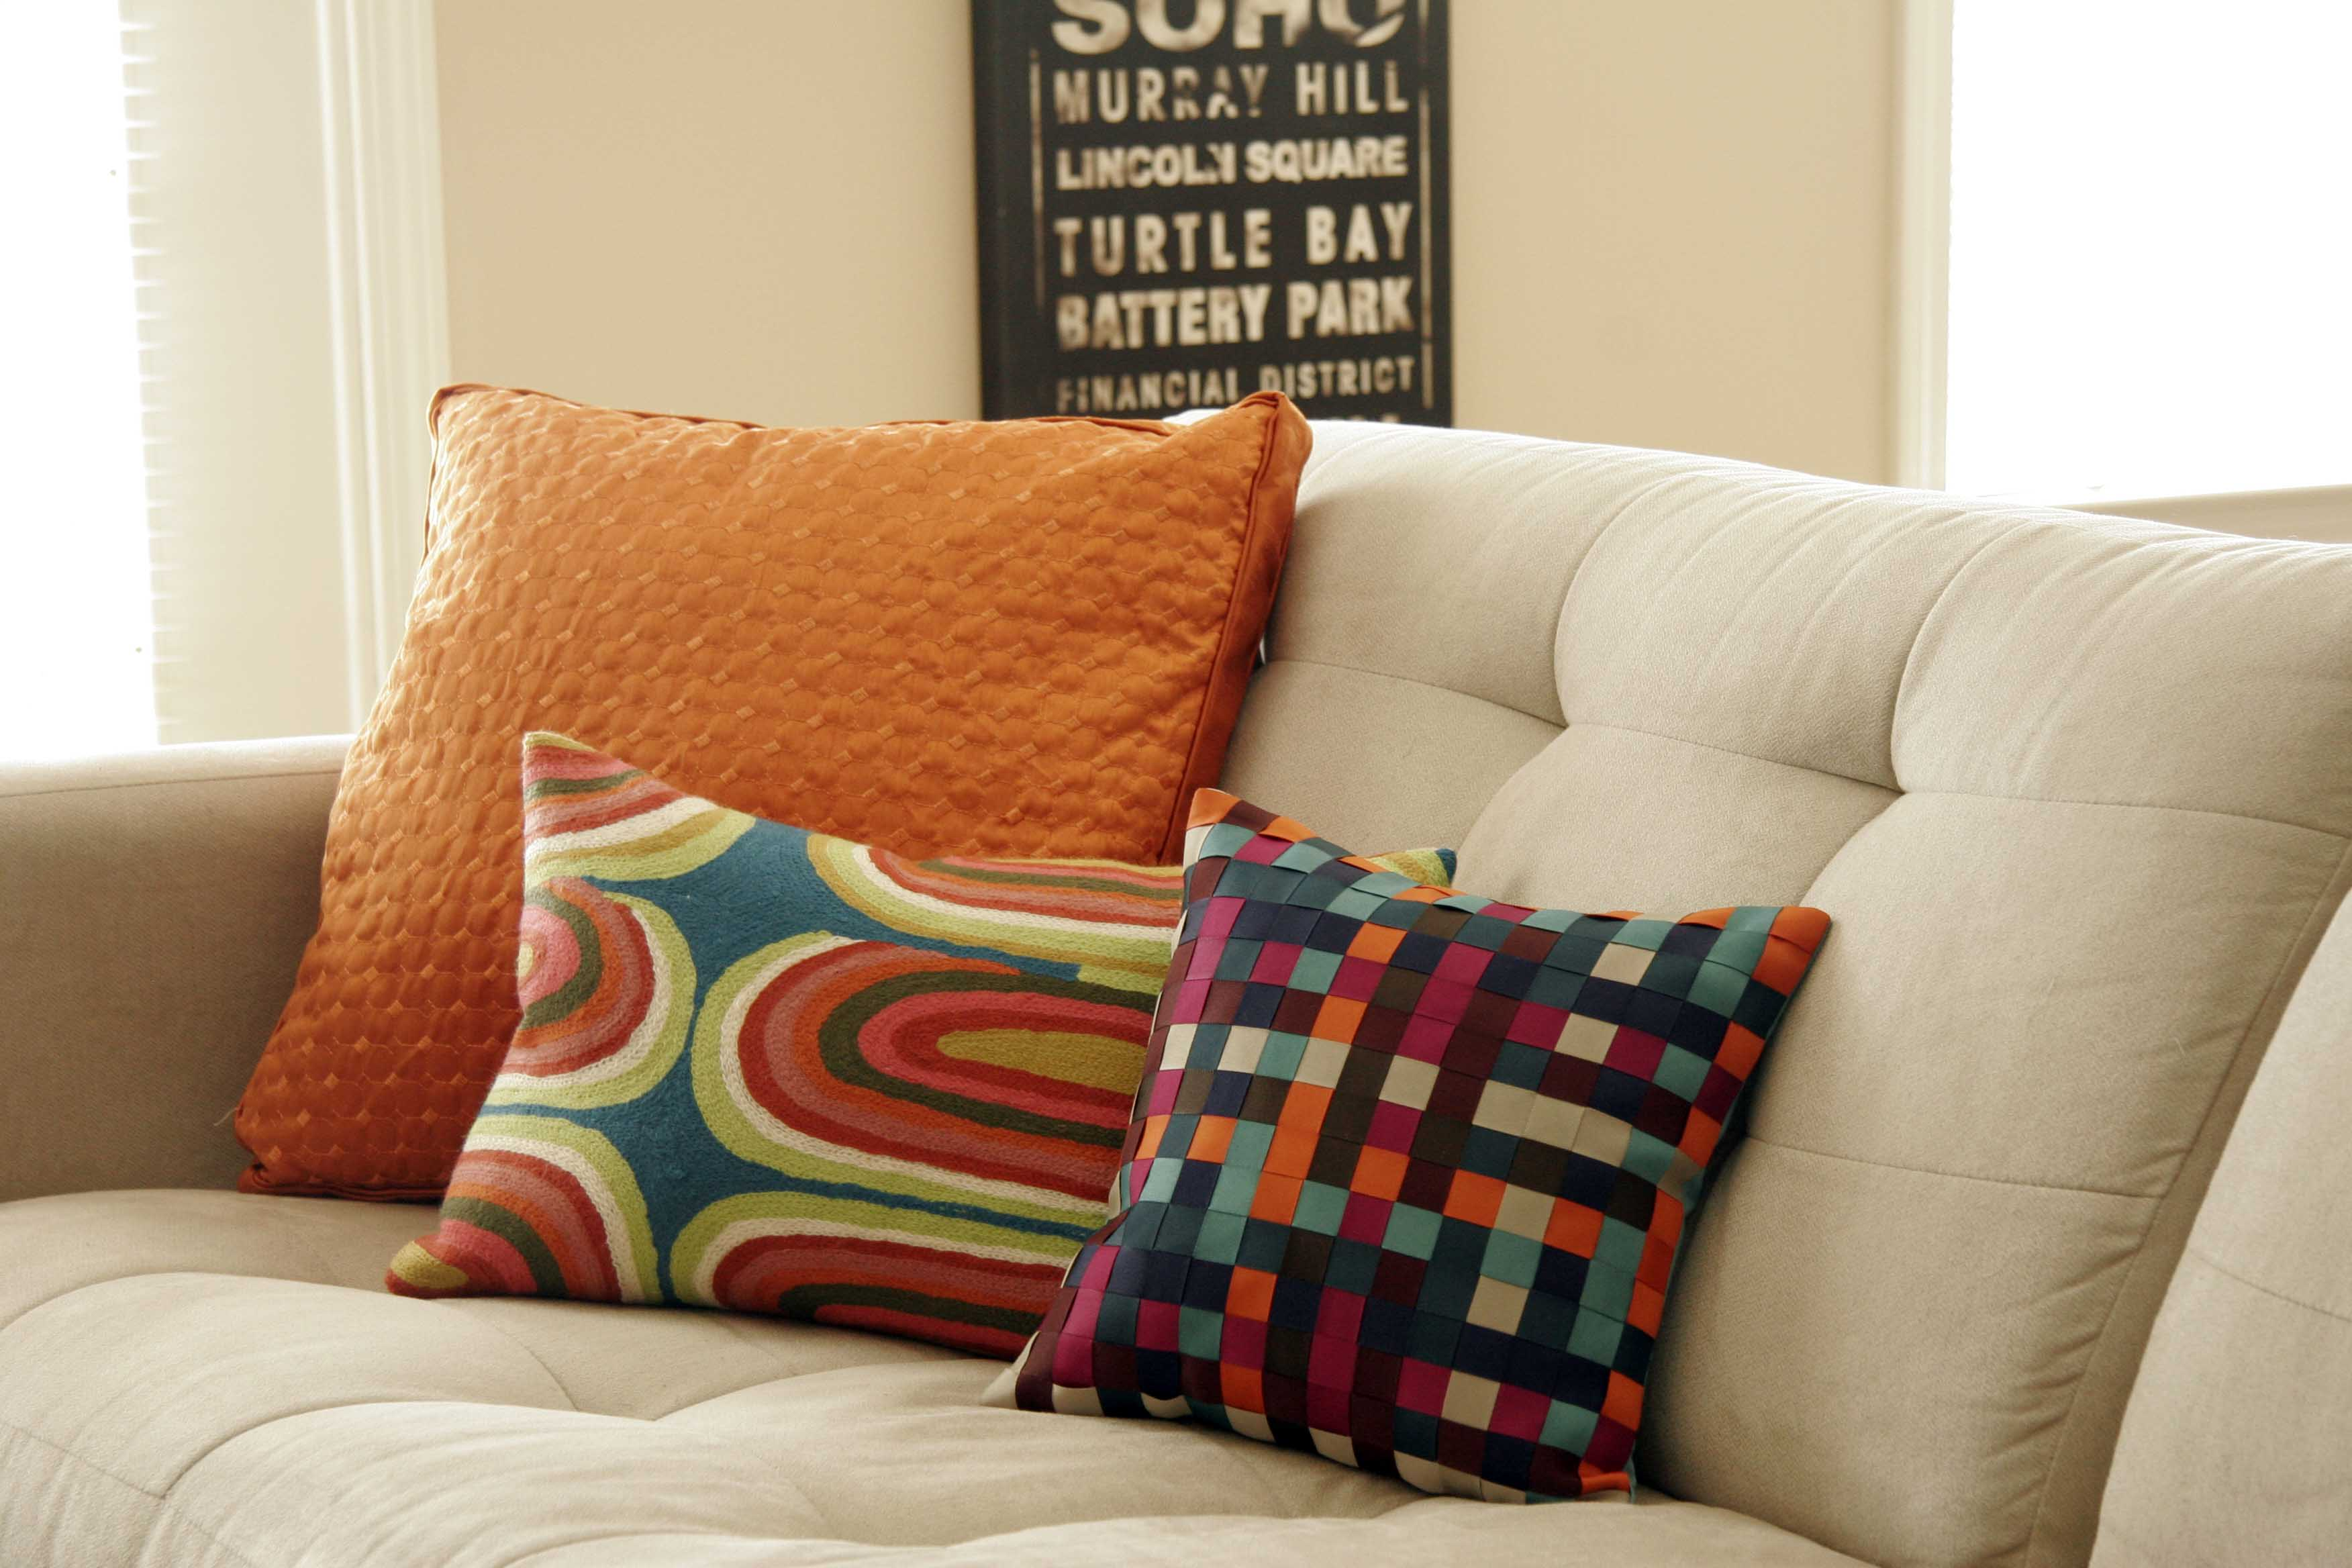 Home Decor: Sofa Pillows With Sofa For Living Room